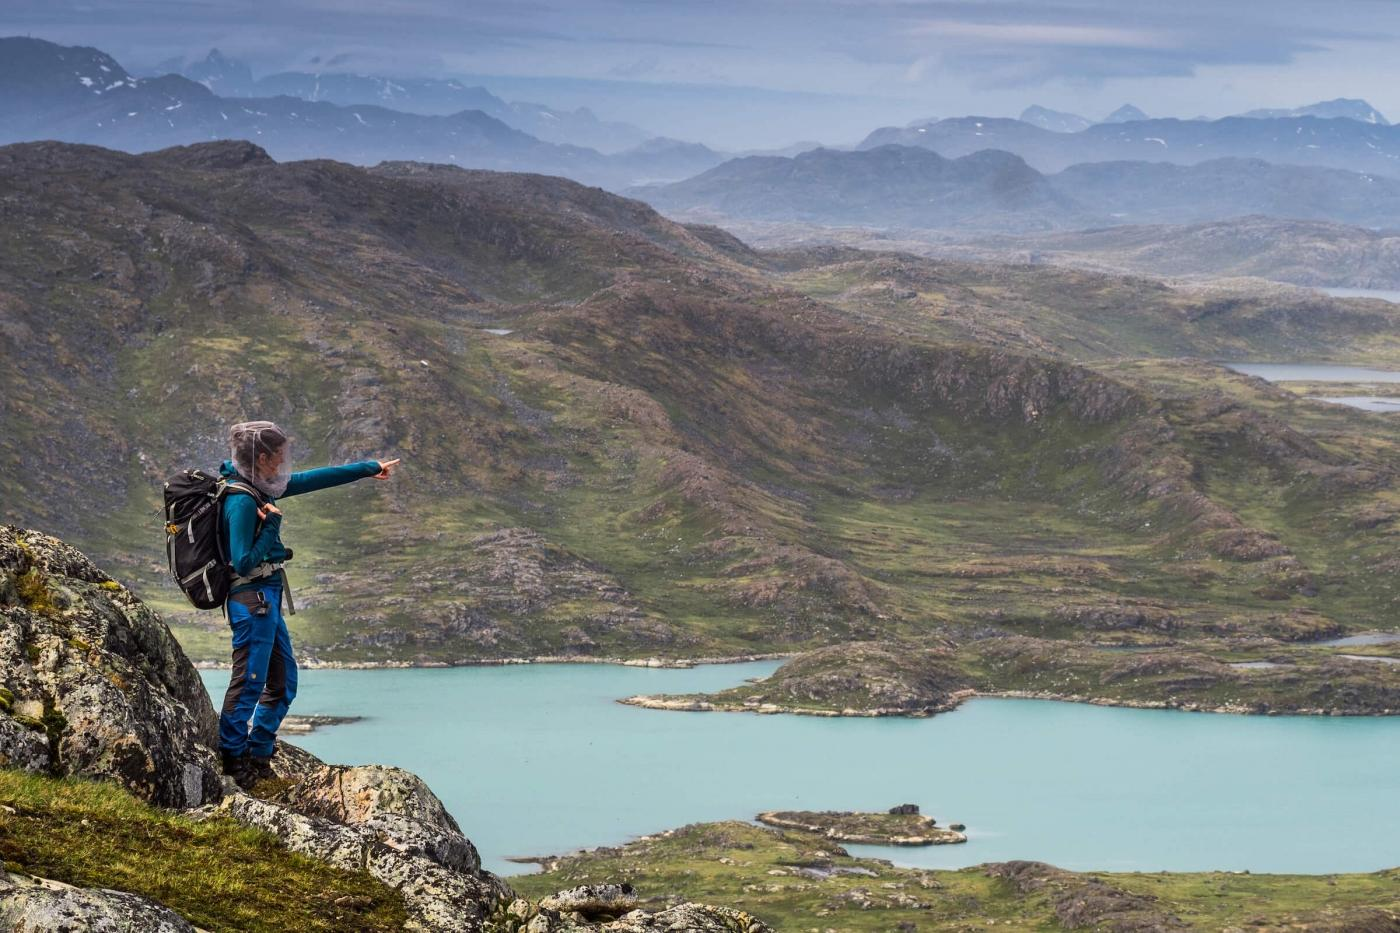 Beautiful view over green mountains and turquoise waters in South Greenland.